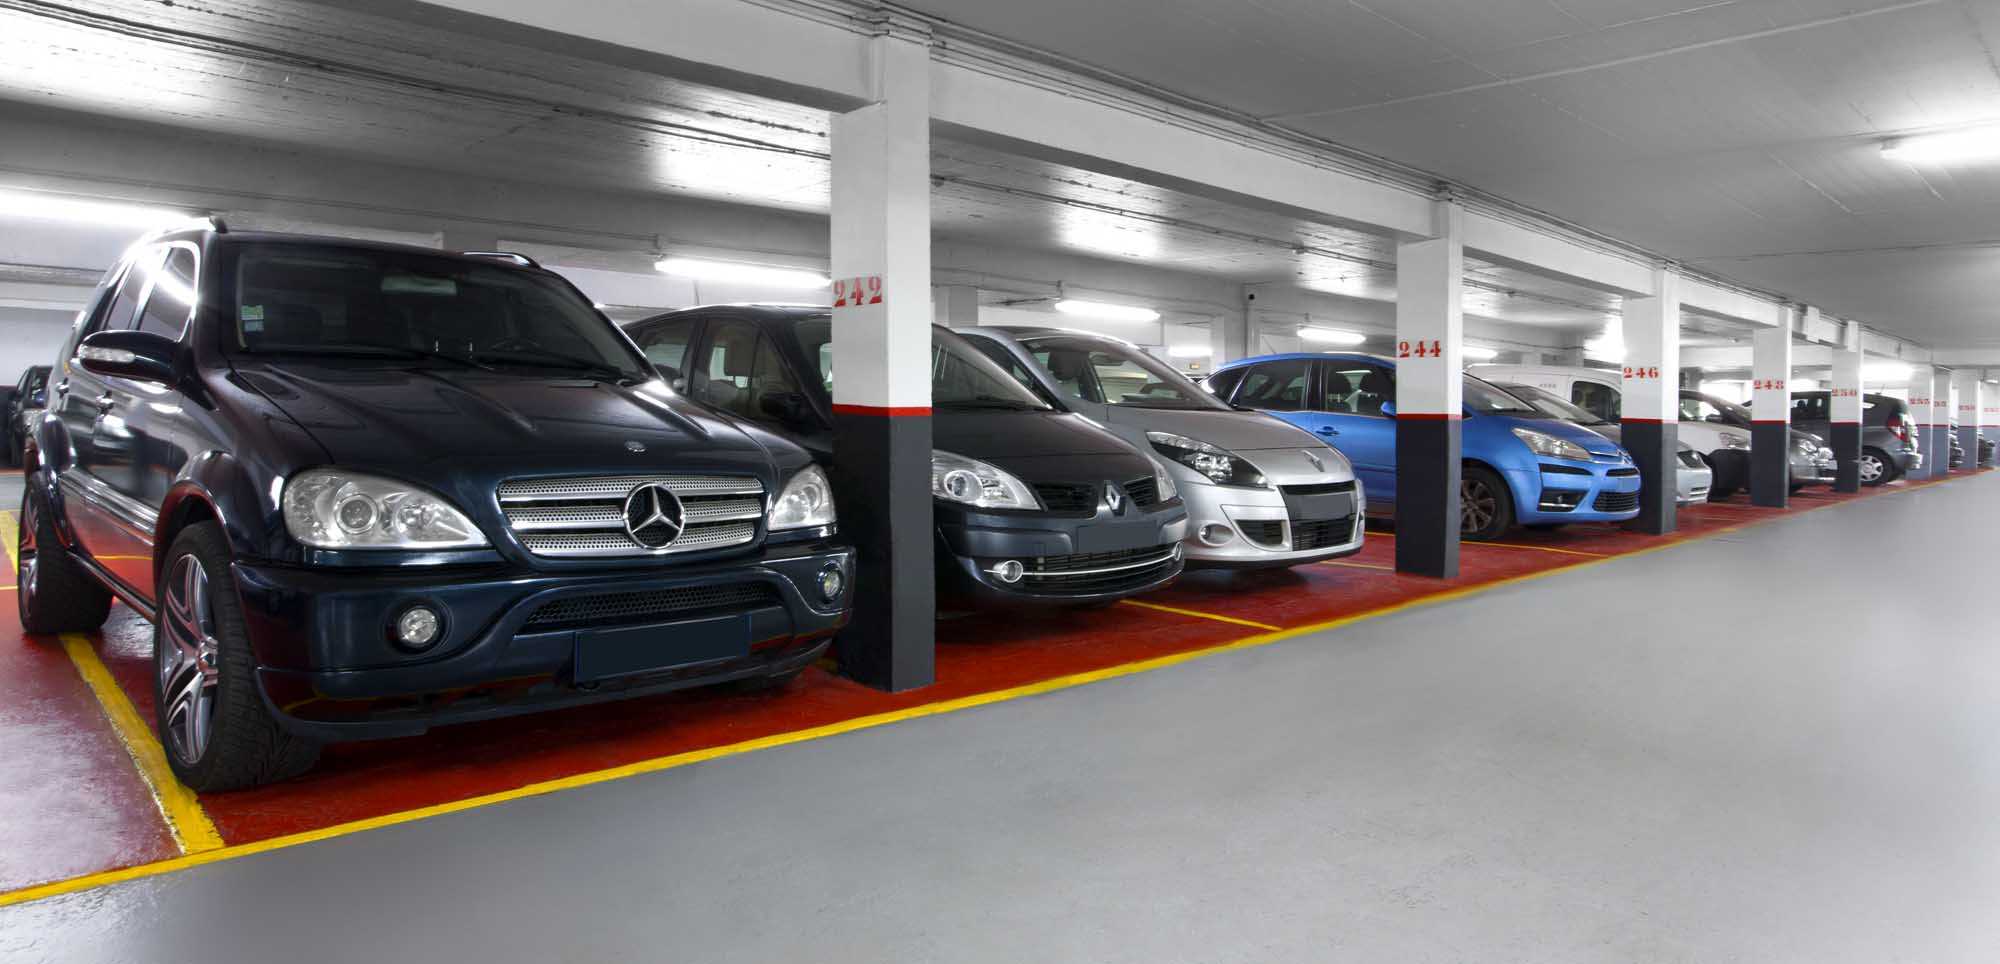 Location de parking quand on a plusieurs voitures for Assurance voiture qui reste au garage